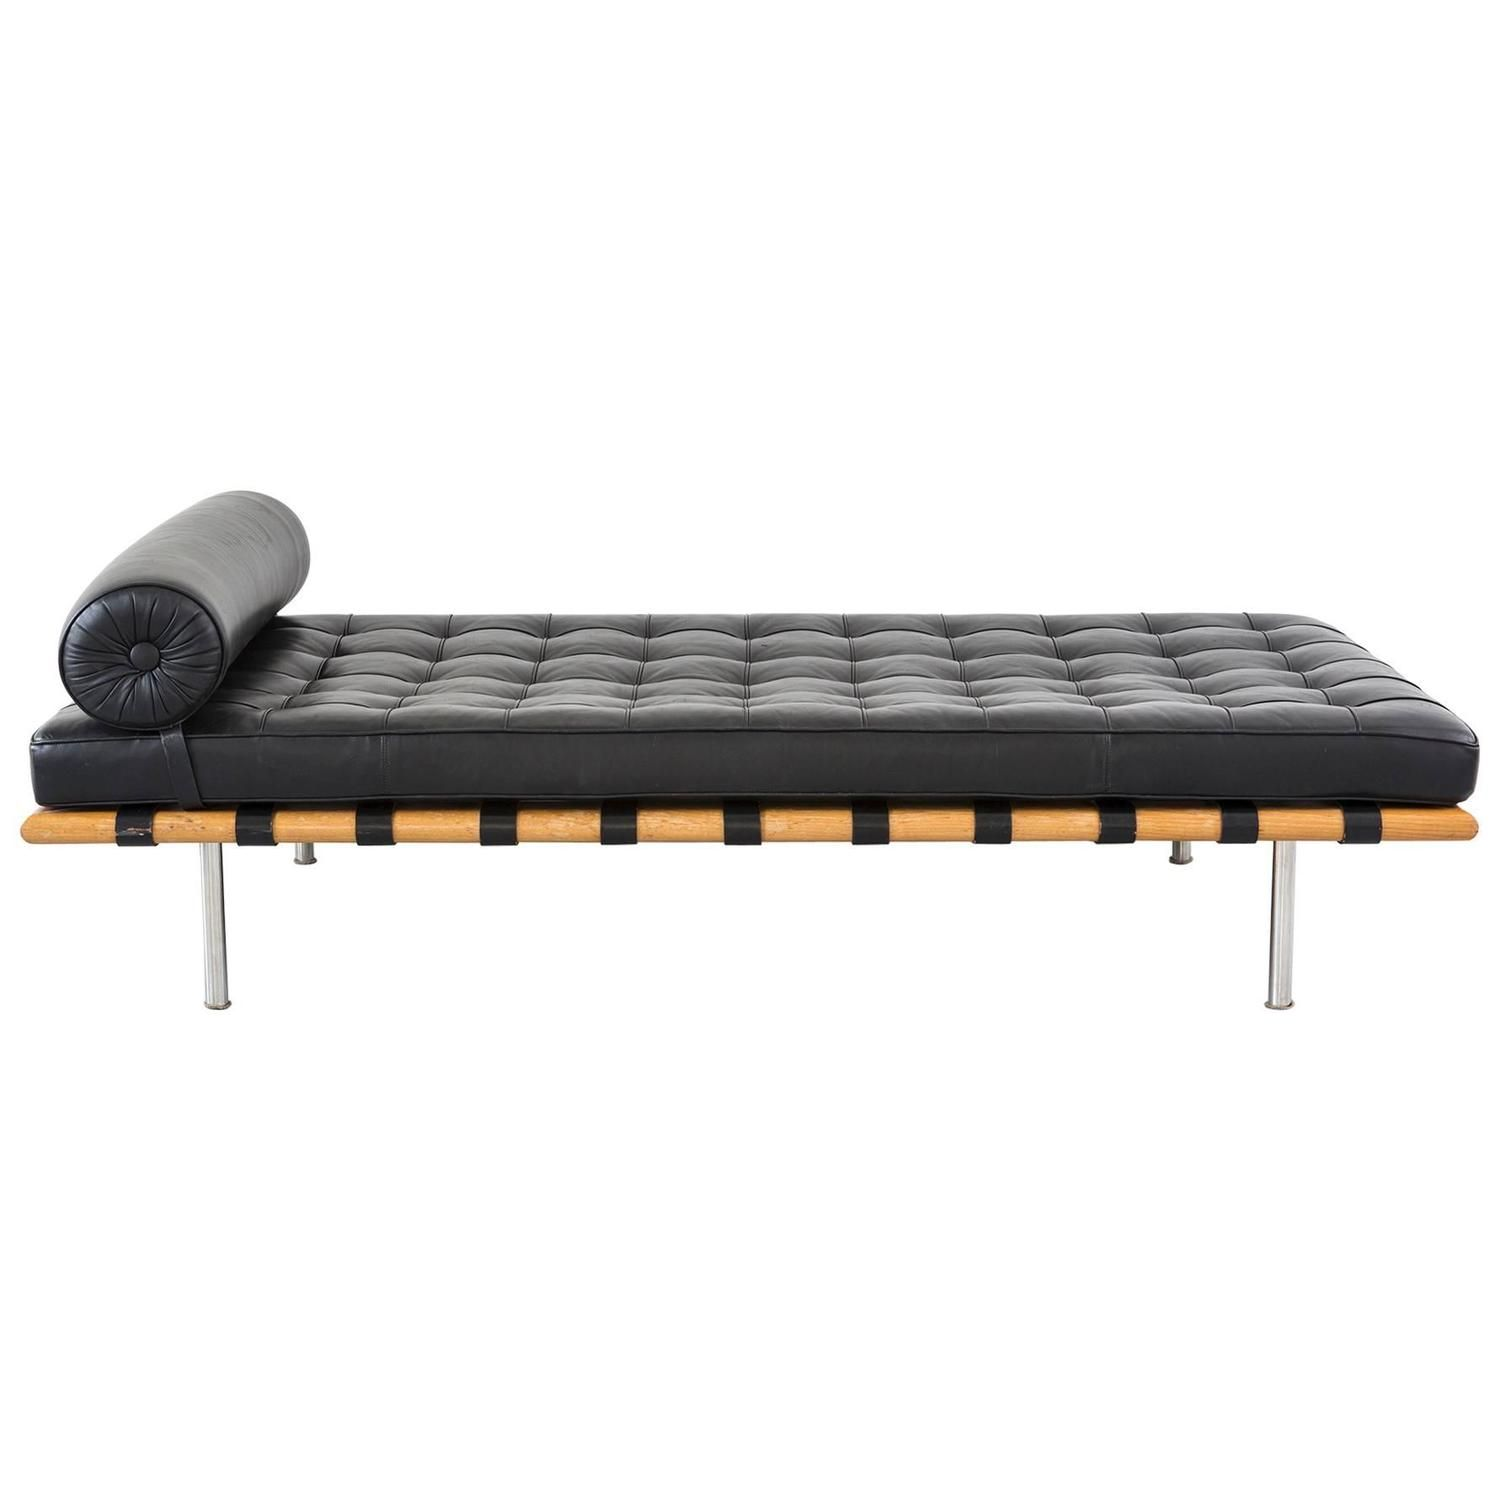 Barcelona Daybed Mid Century Modern Barcelona Daybed Couch By Mies Van Der Rohe For